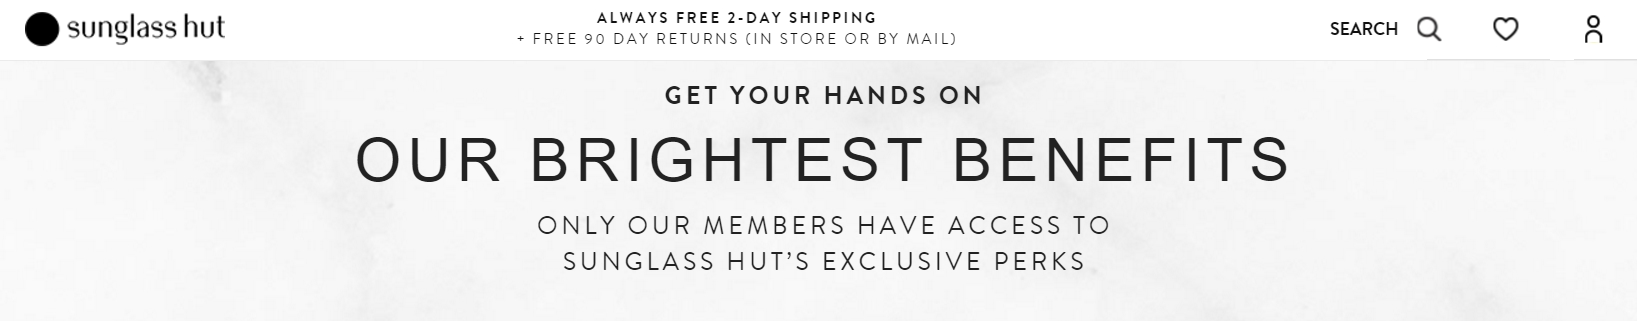 picture about Sunglass Hut Printable Coupon referred to as Sungl hut coupon code 2018 / Xbox are living gold subscription